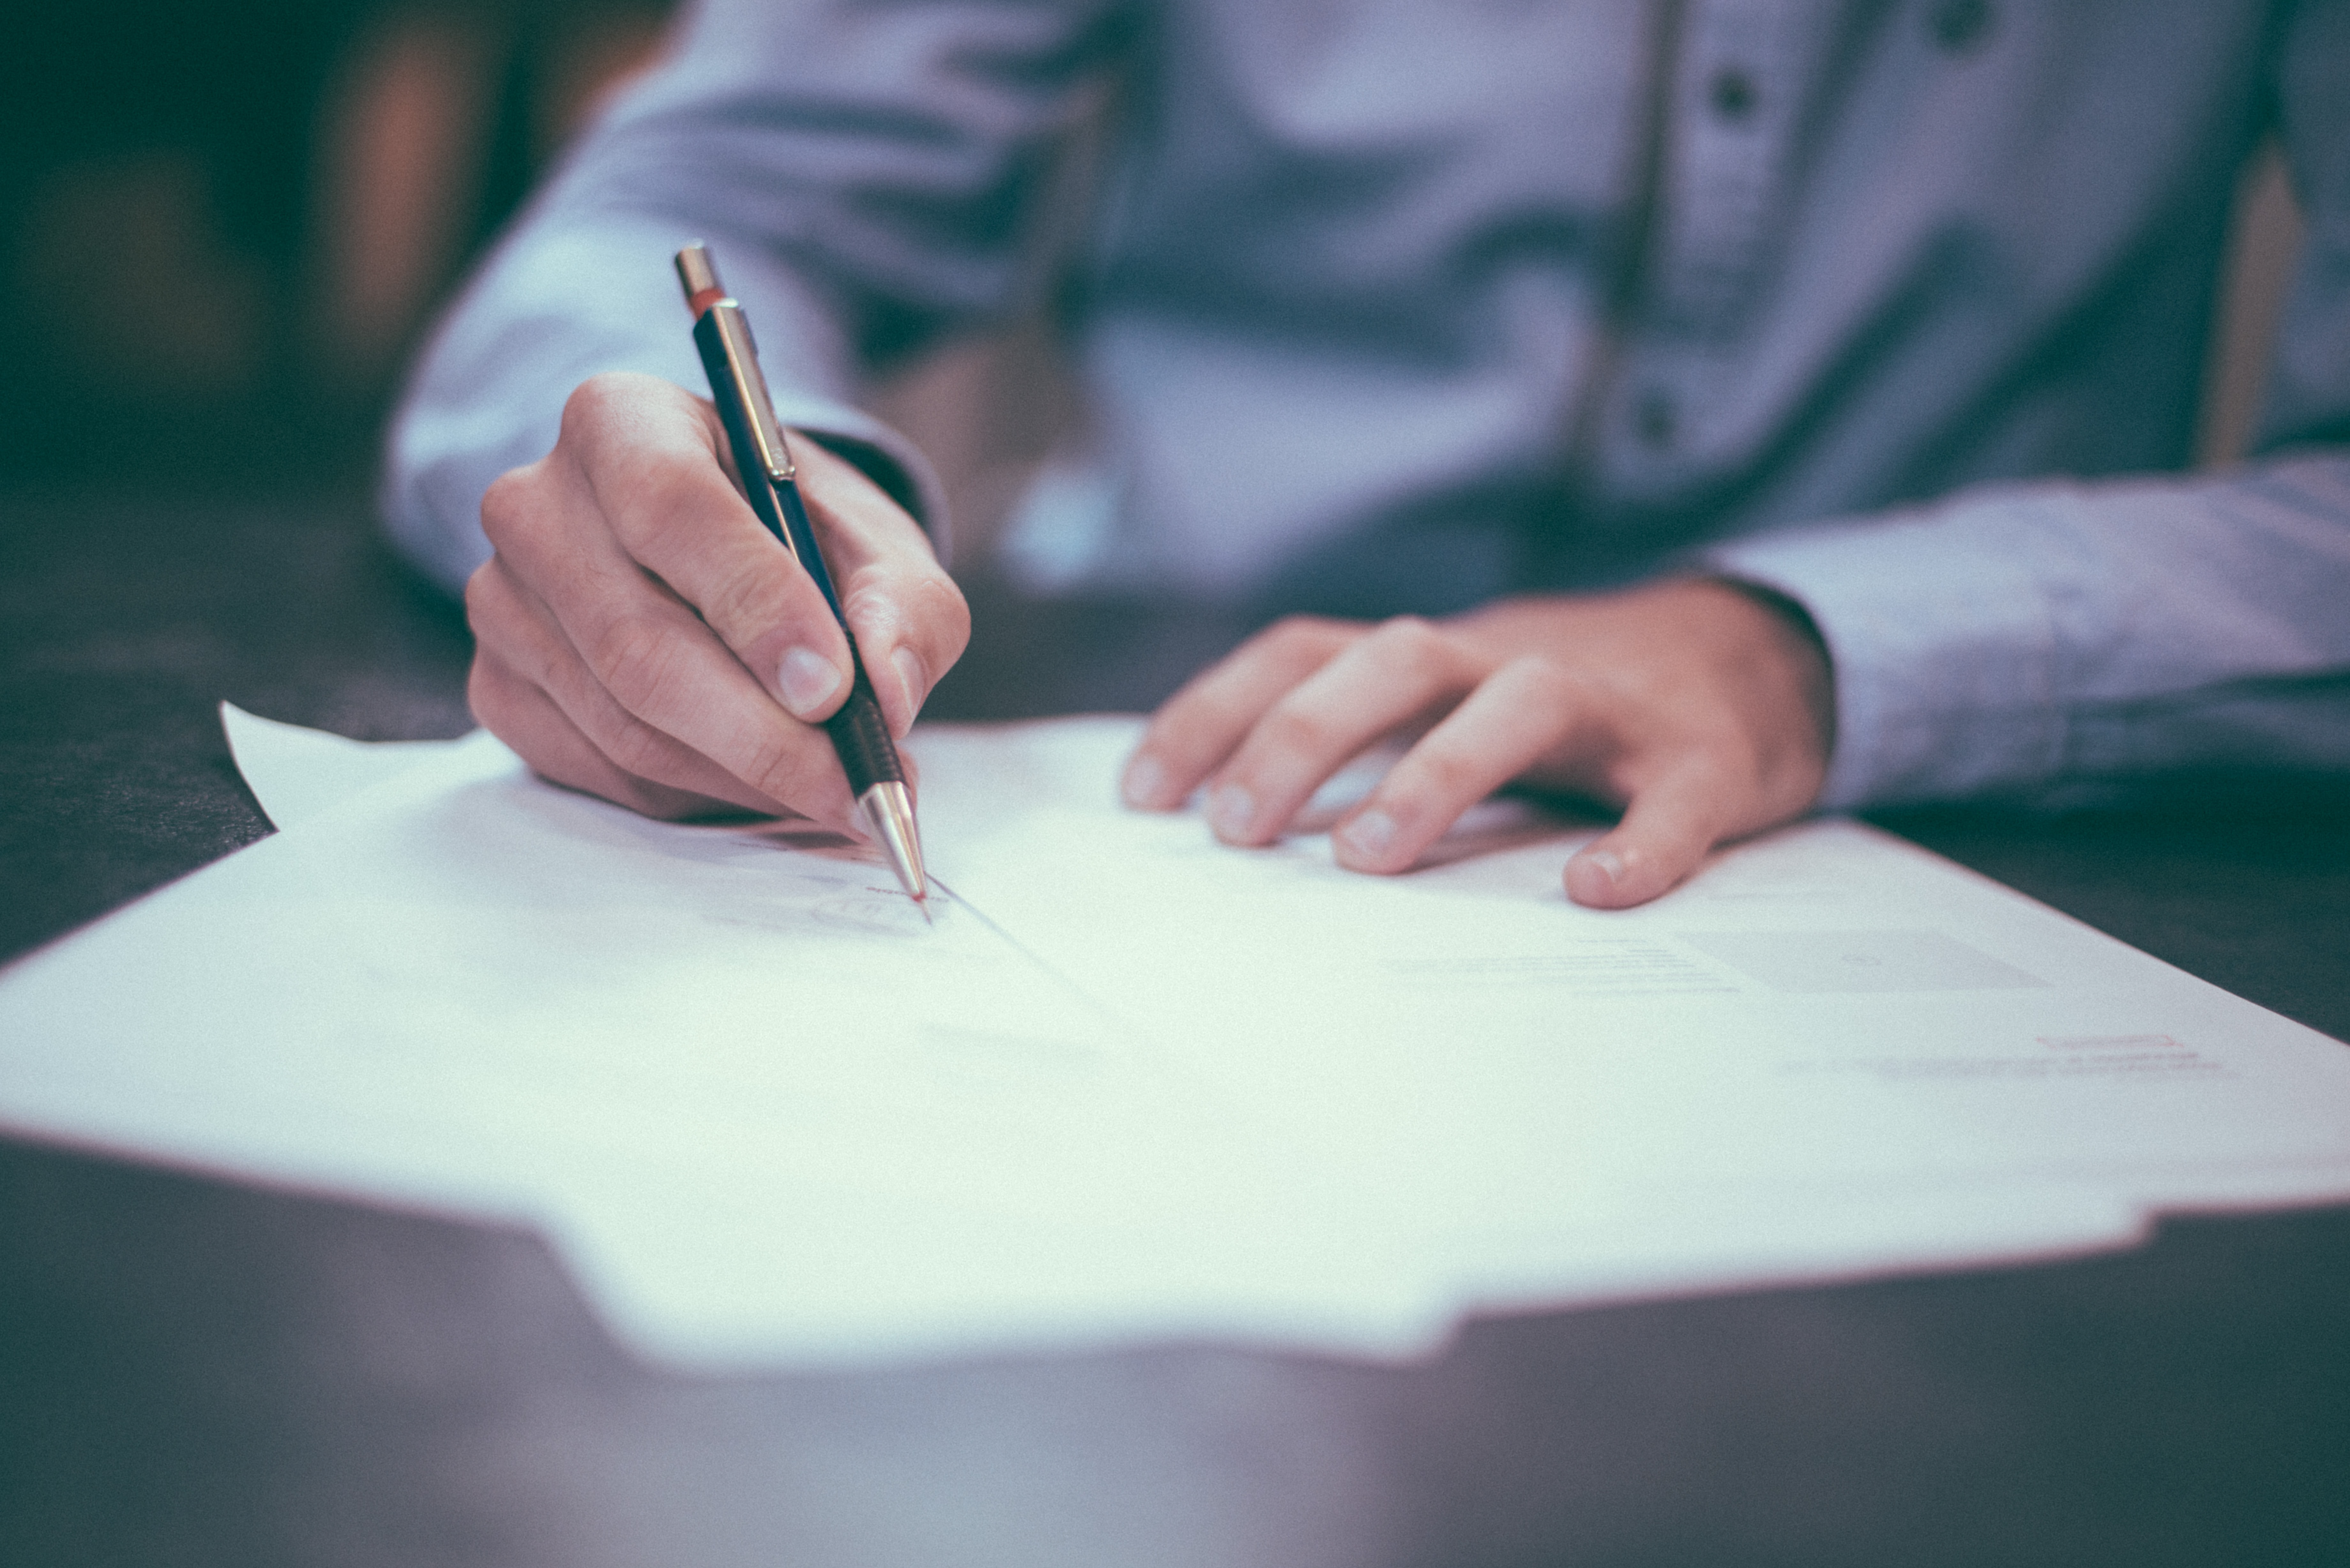 Legal advisor helps with wills and estate planning